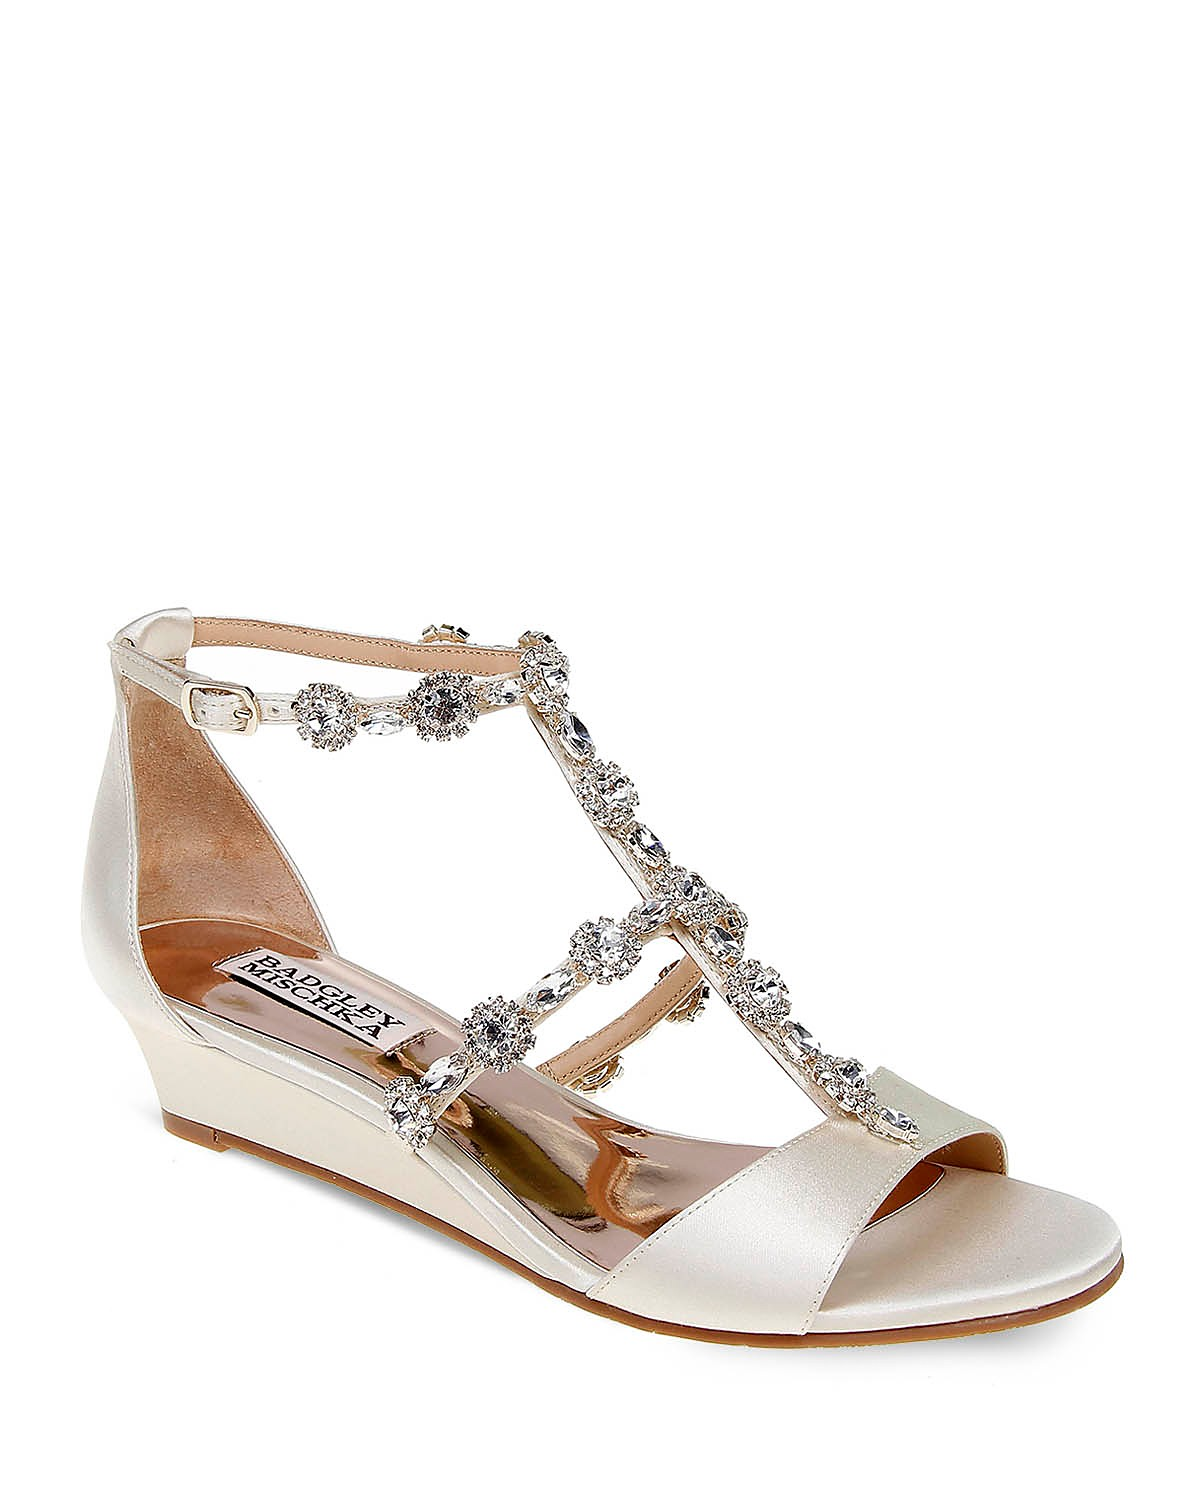 Badgley Mischka Terry Embellished T Strap Wedge Sandals H9qXT